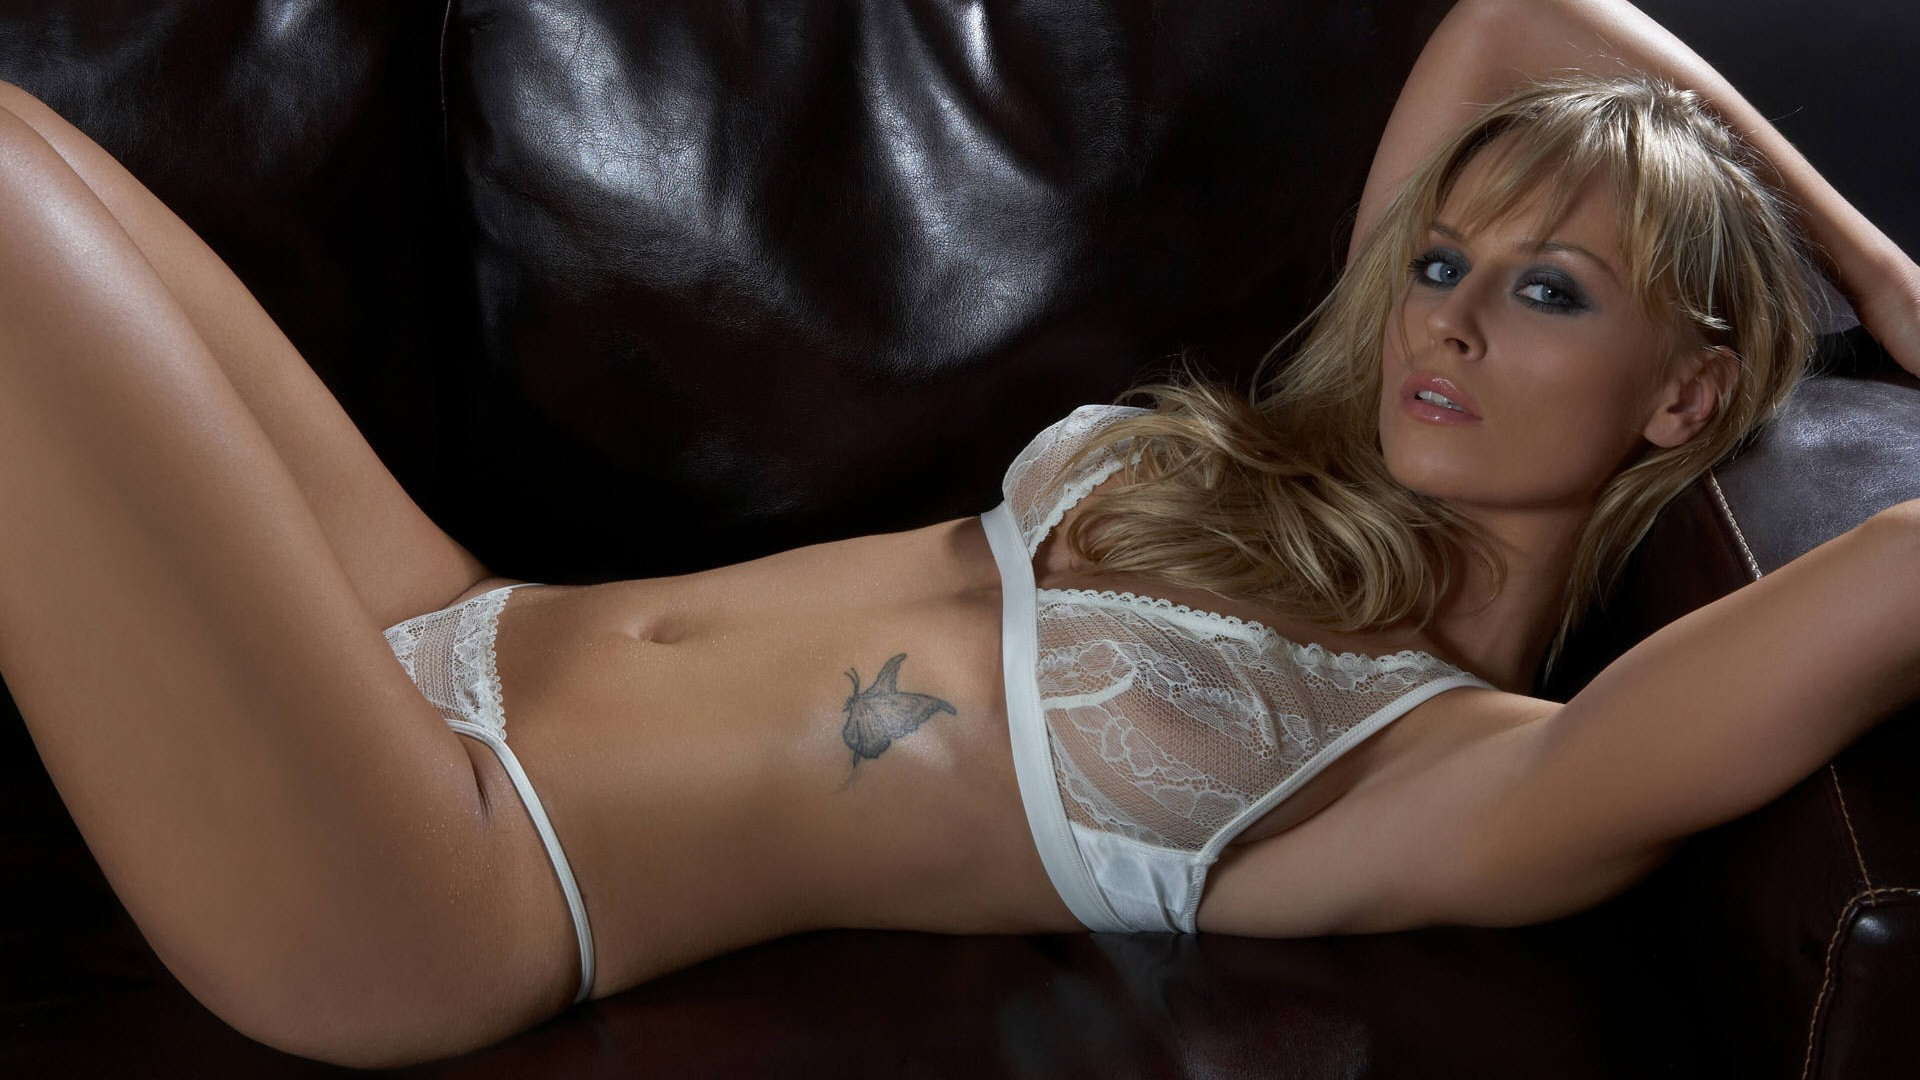 kelly-sex-wife-in-sexy-lingerie-wallpaper-with-sexy